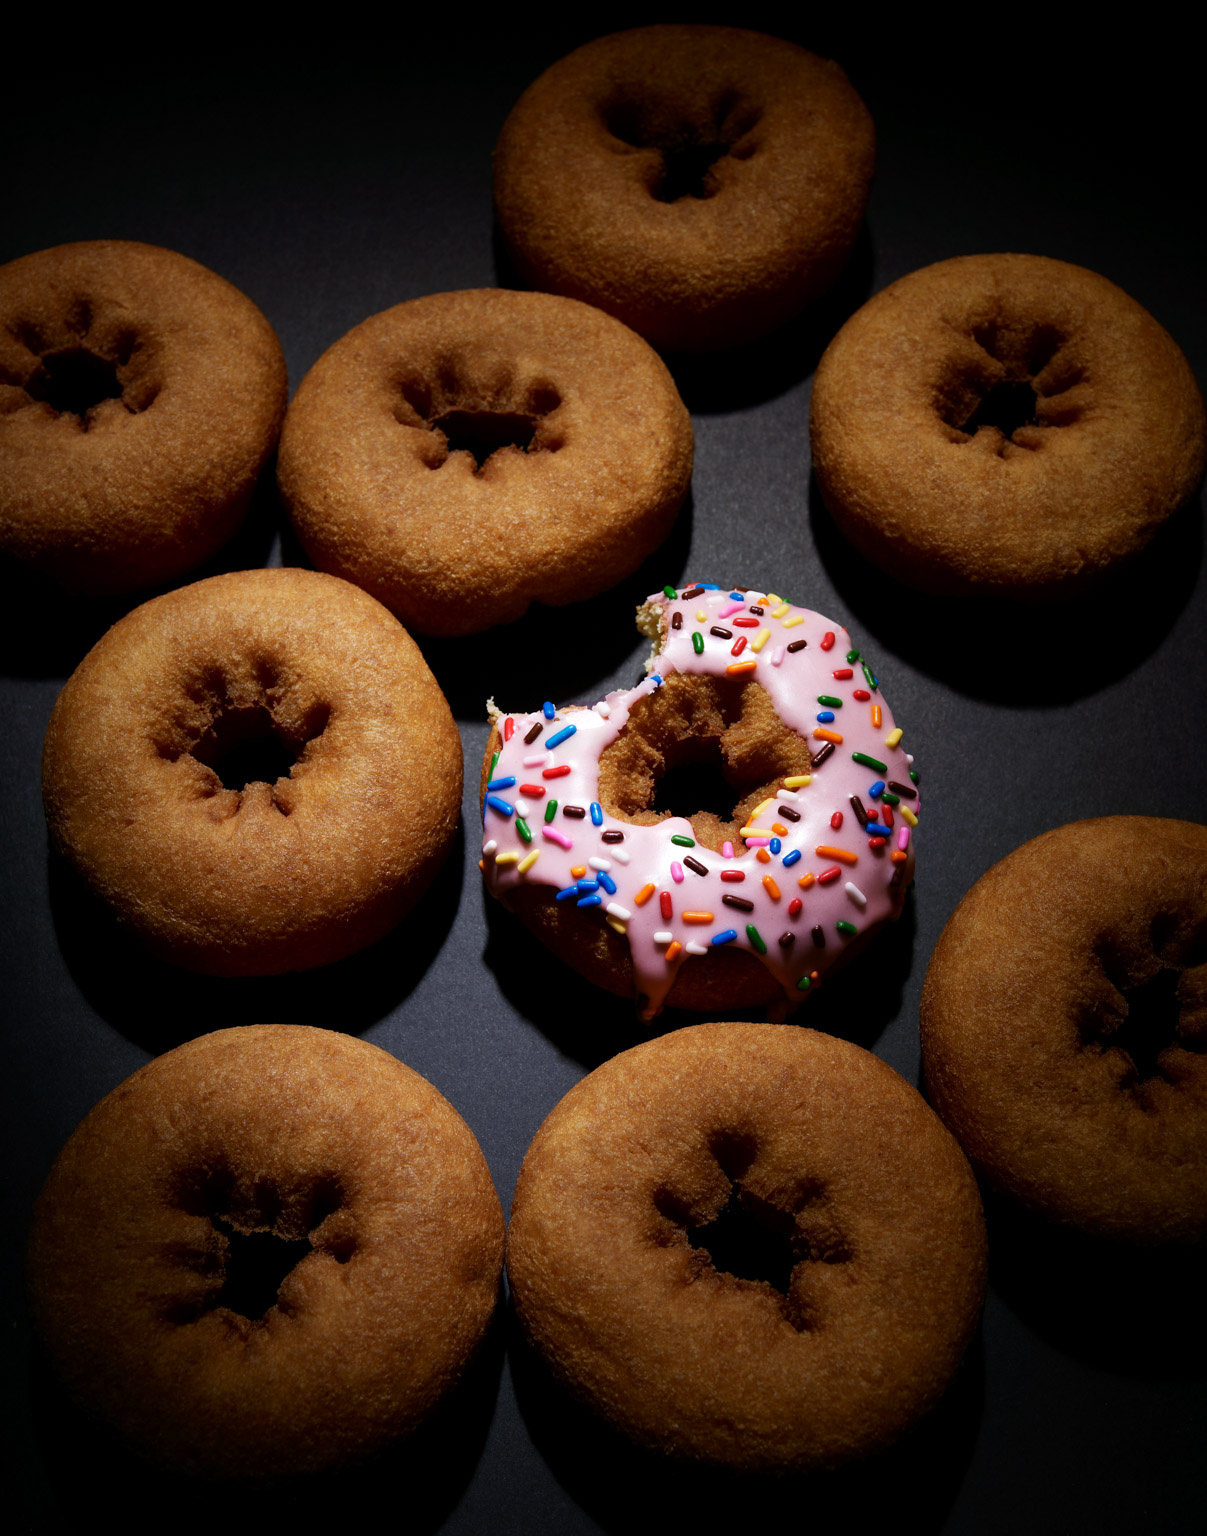 608_donuts_336_42-24299820